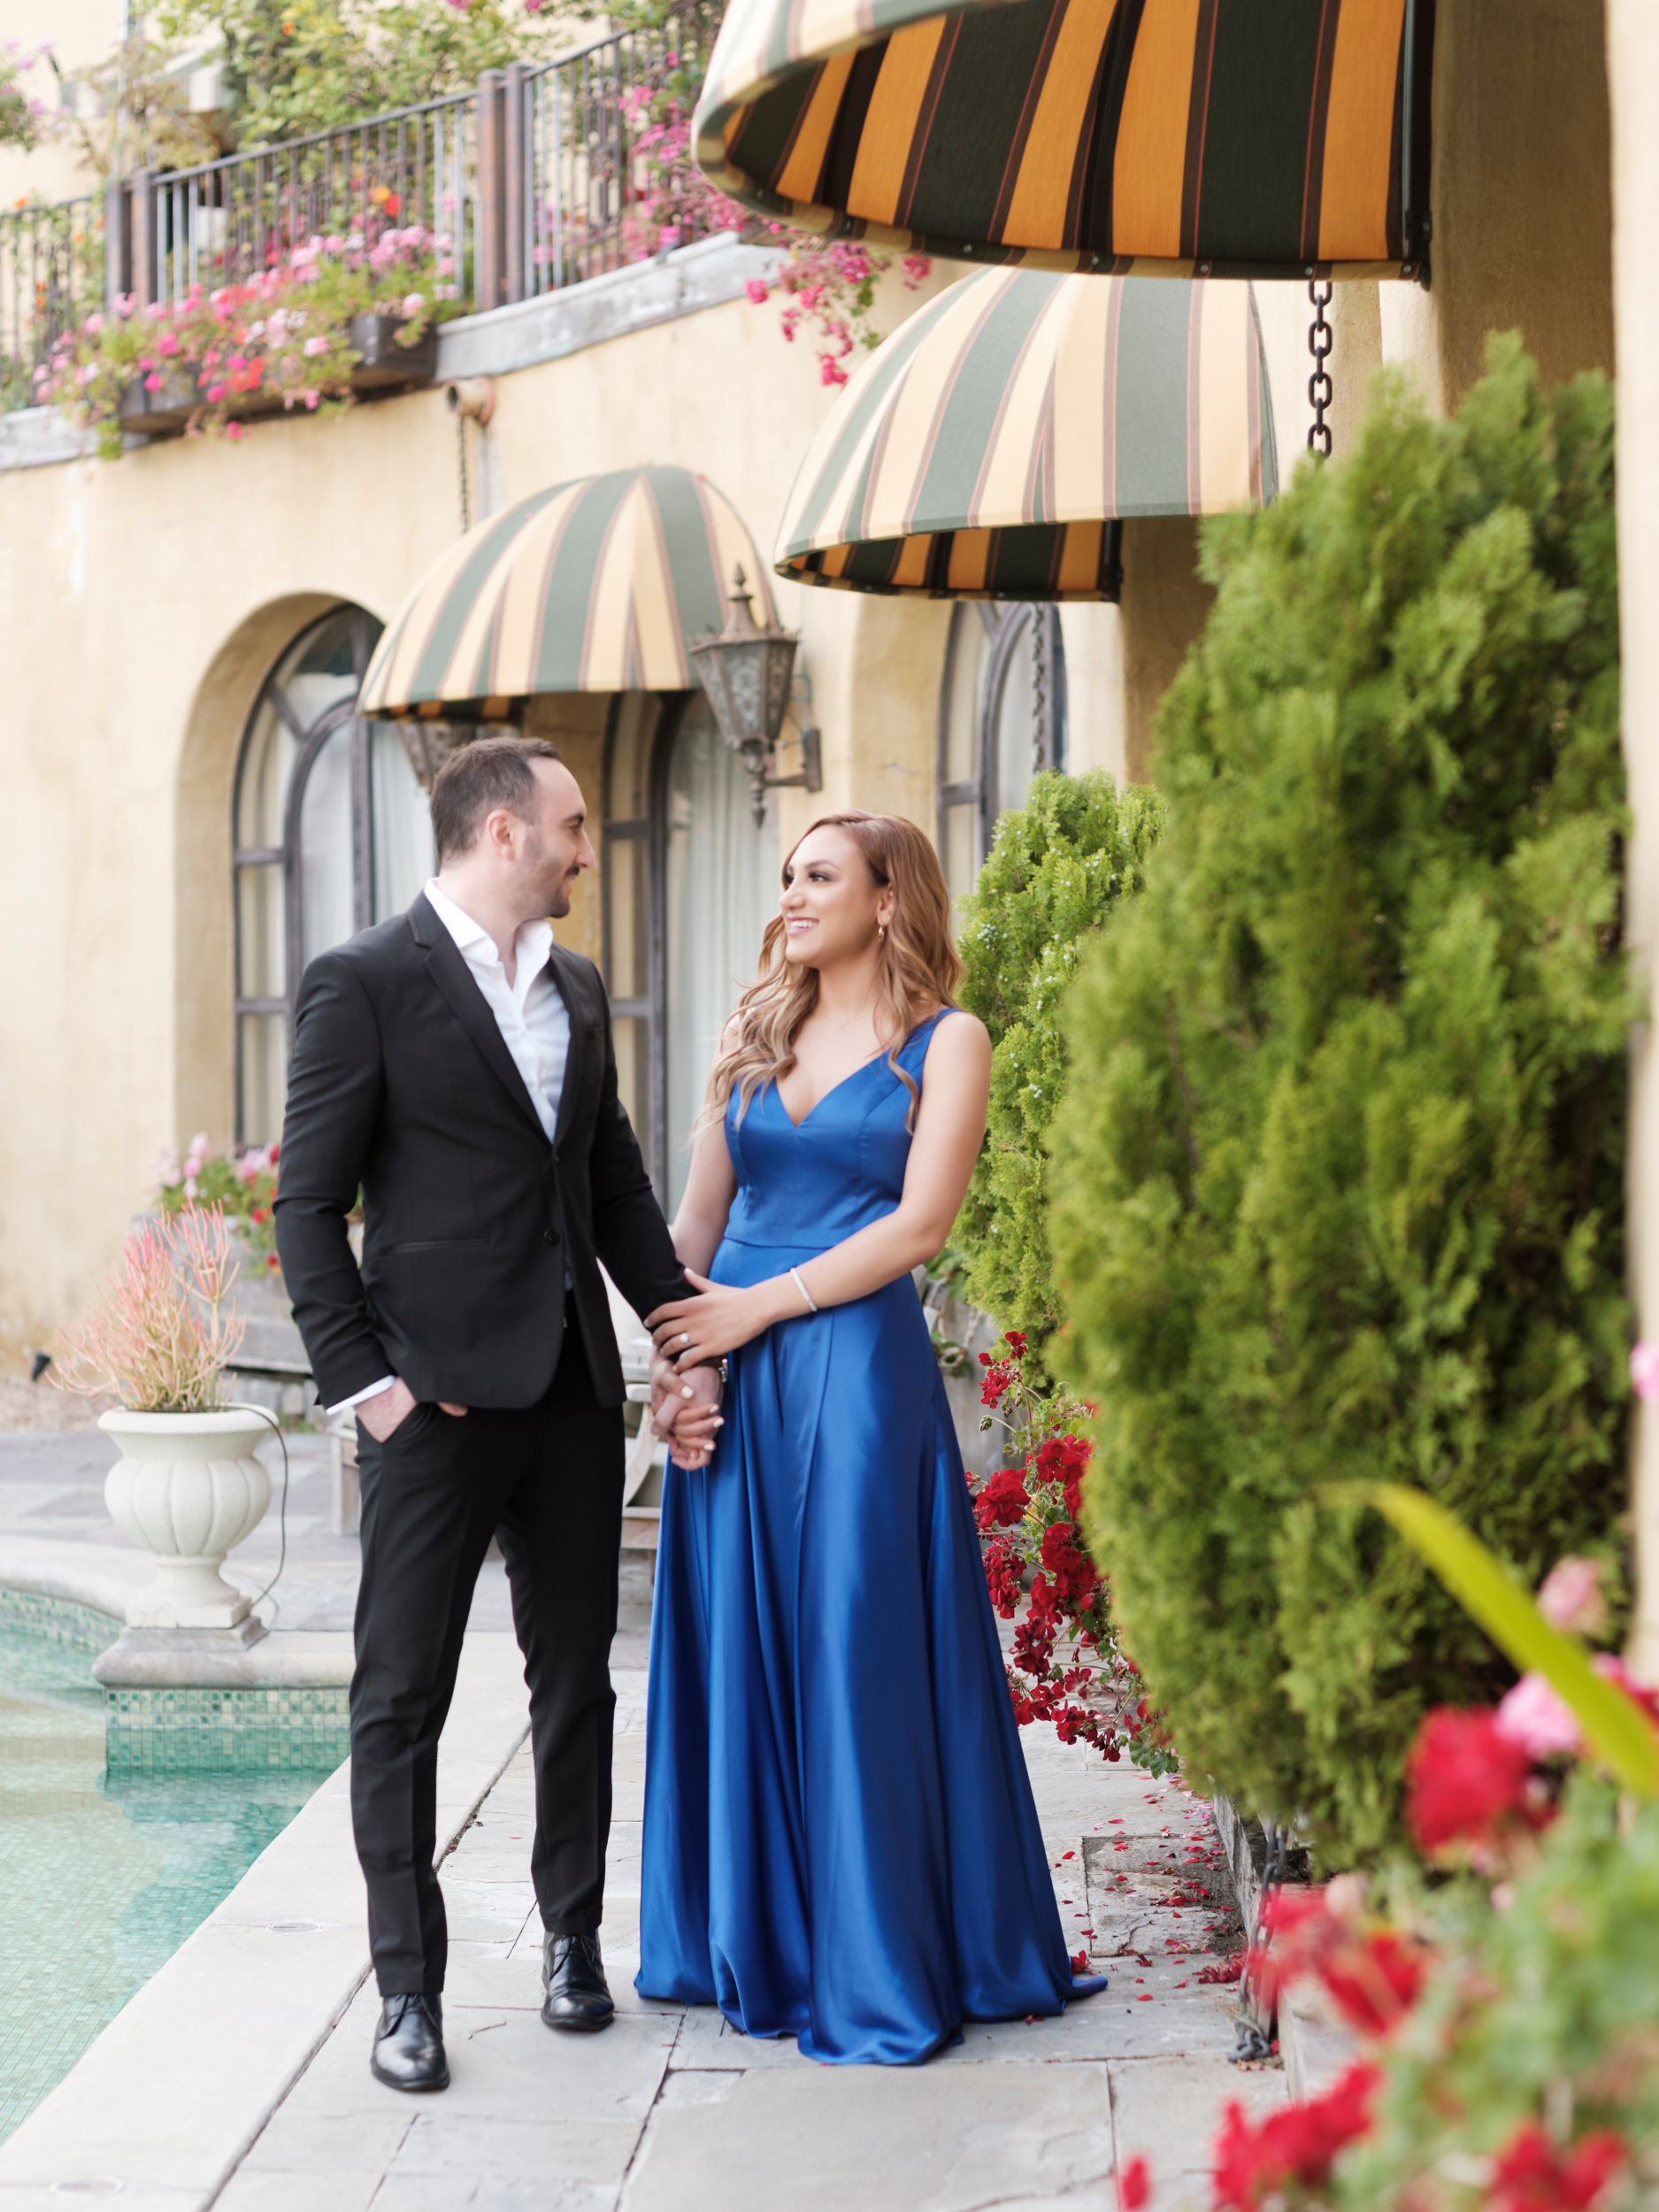 Engaged and in love in Los Angeles. Can't wait for their California Wedding.